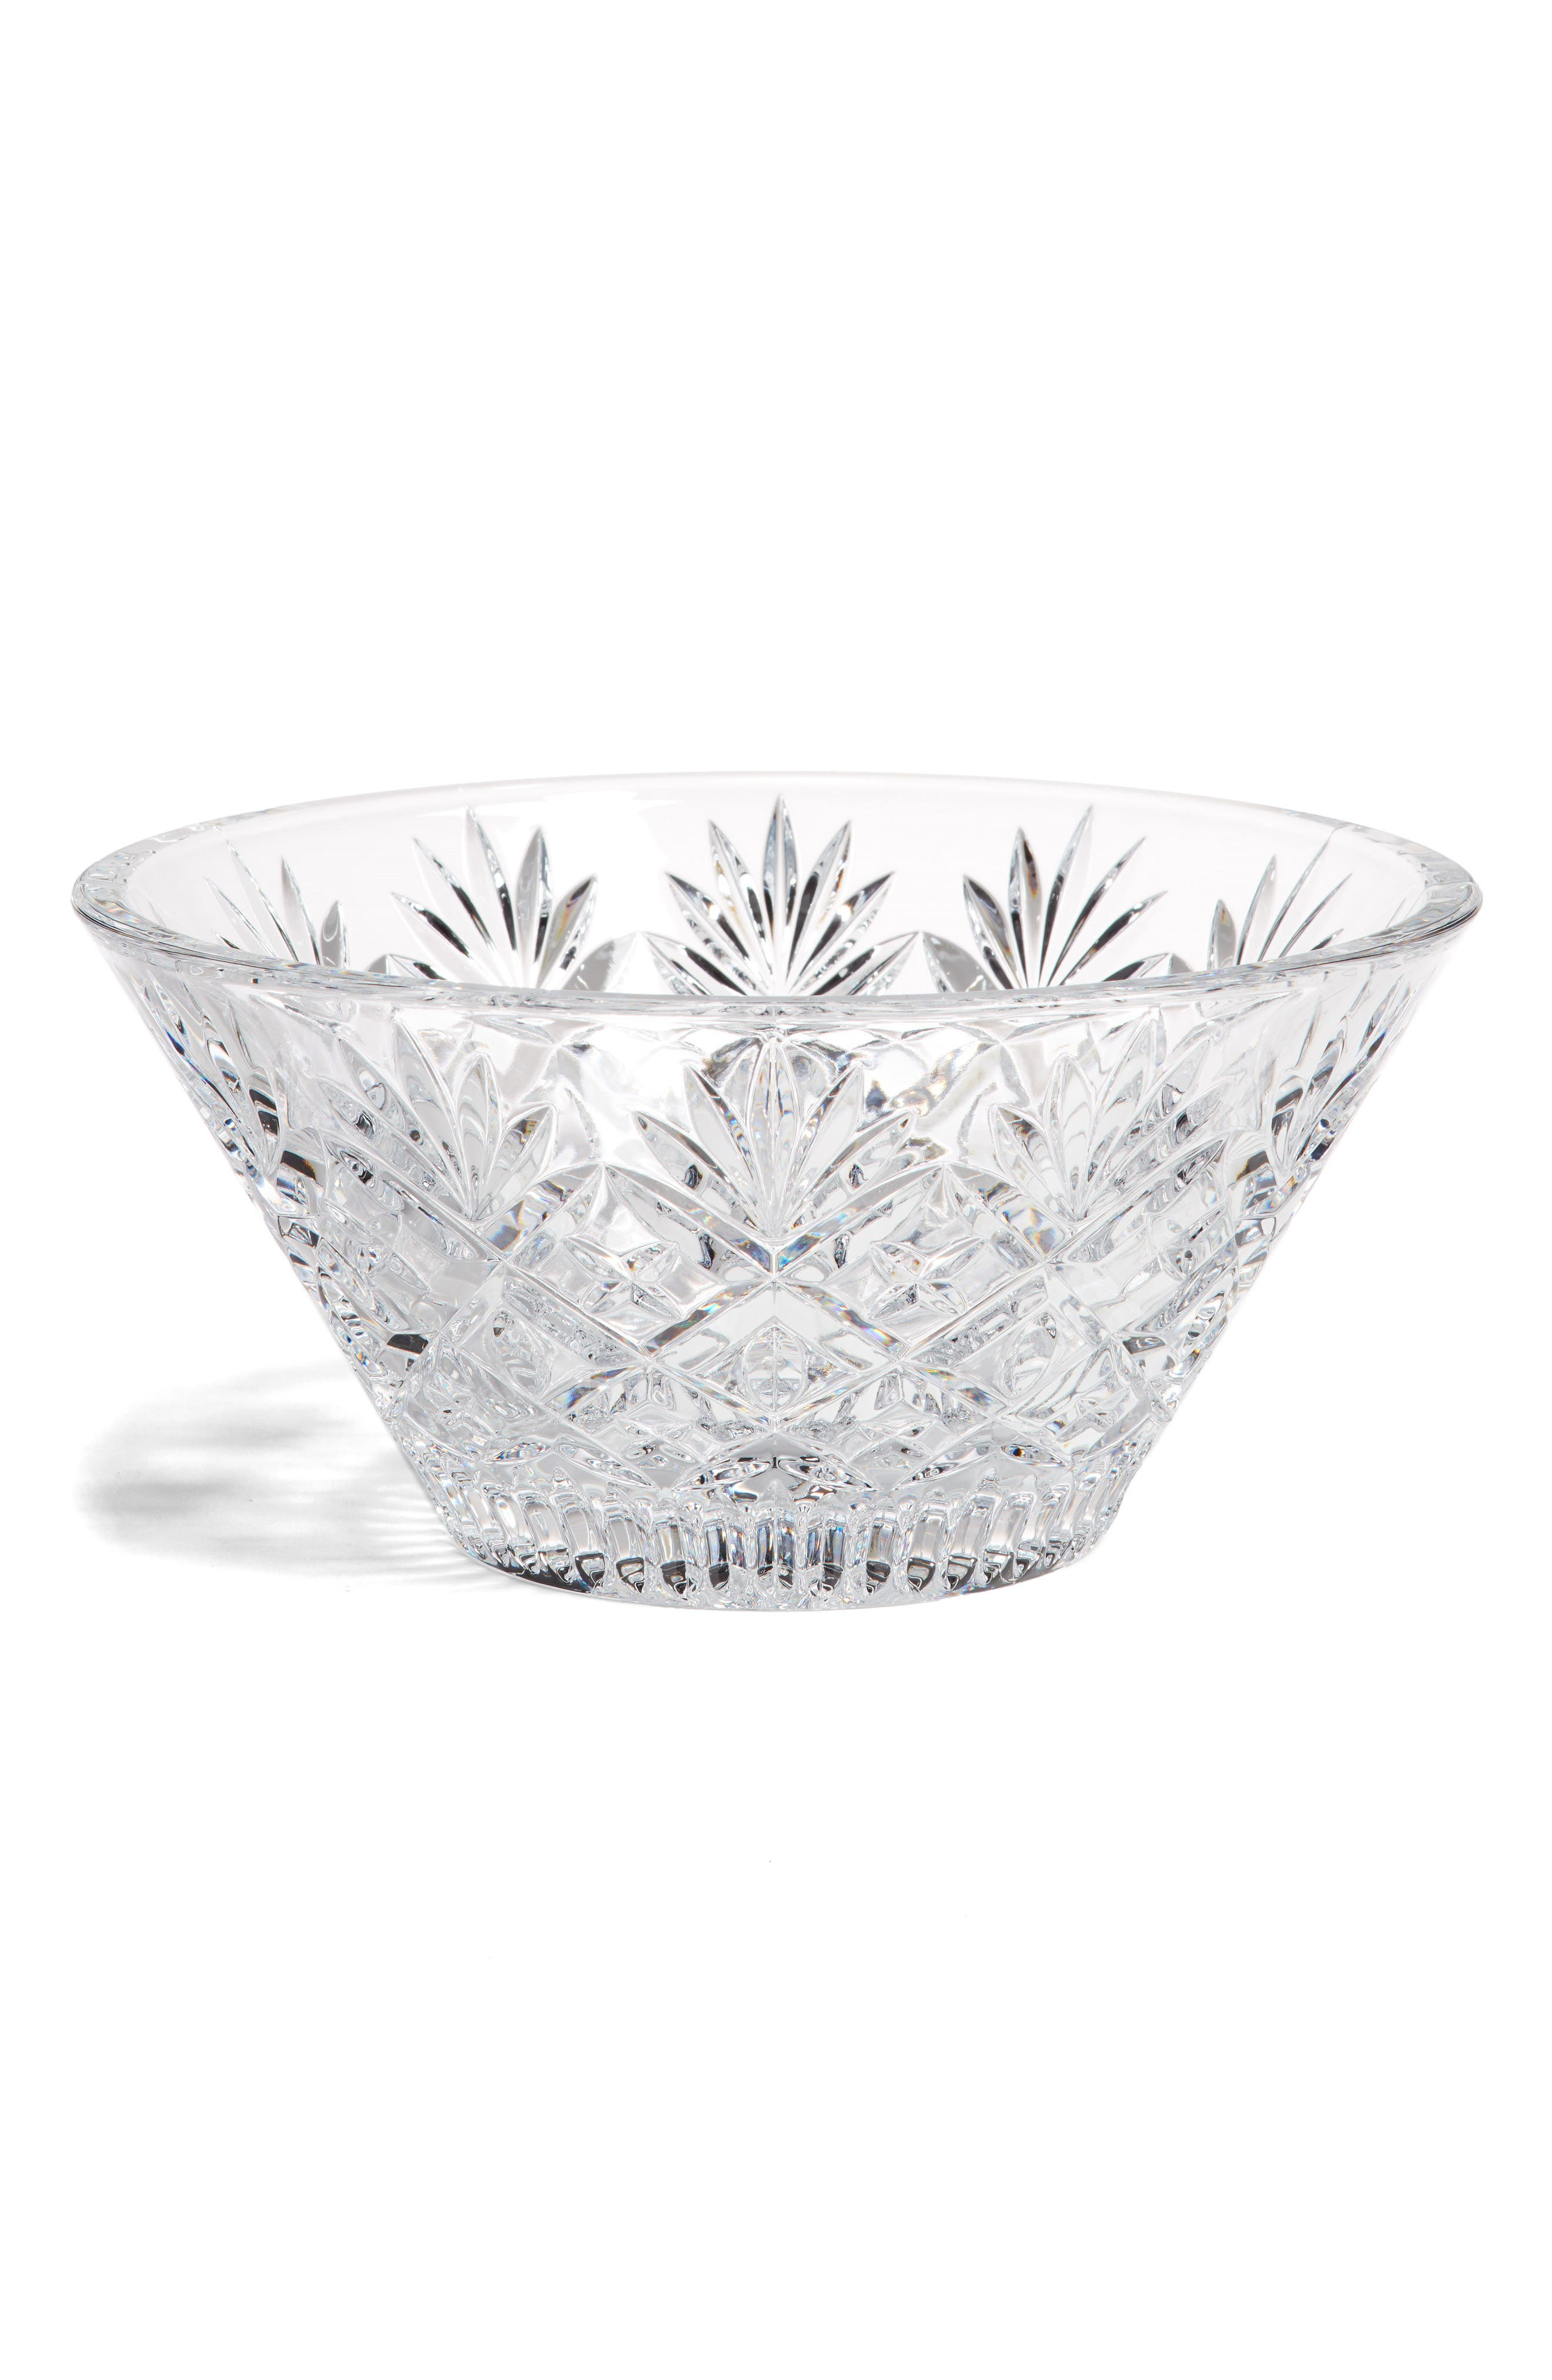 Northbridge Lead Crystal Bowl,                         Main,                         color, 100